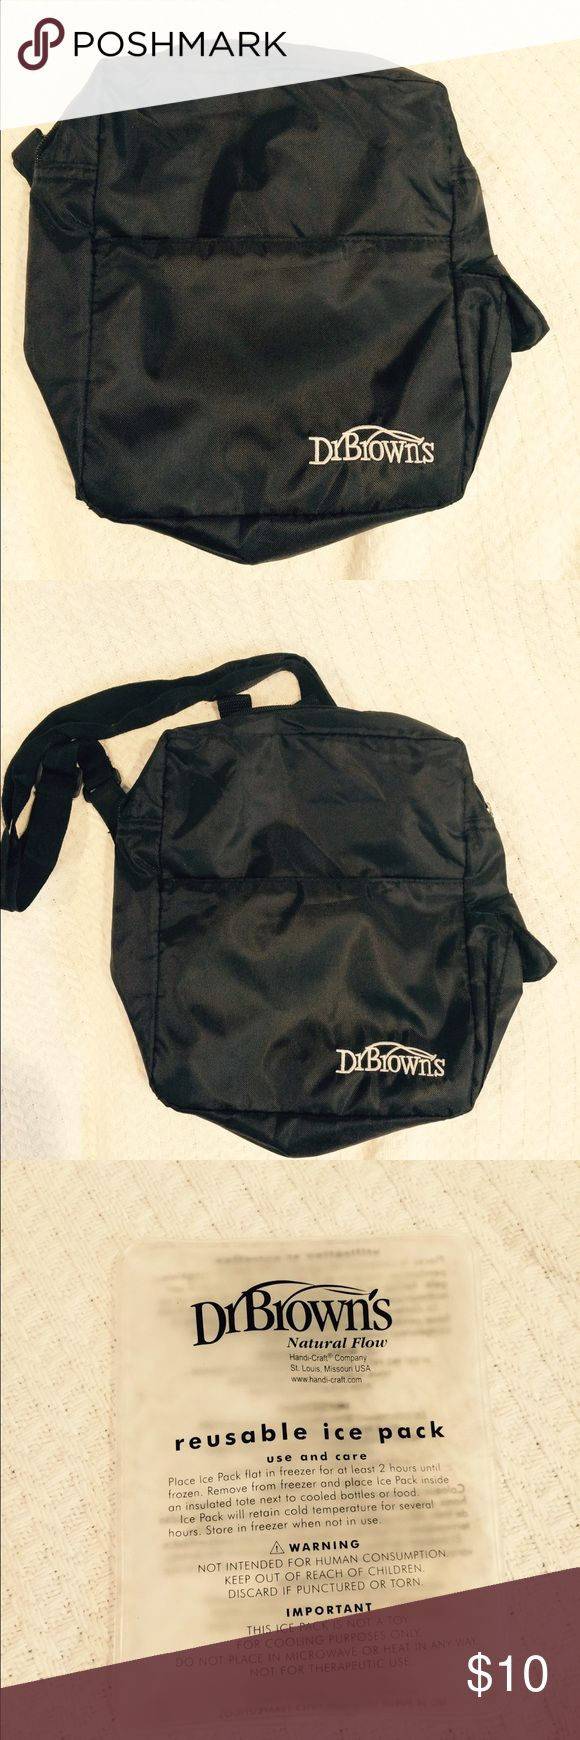 Dr. Brown's Bottle Bag with Reusable Ice Pack Dr. Brown's bottle bag is a convenient way to carry bottles with formula/milk. It will be especially useful in the upcoming warmer months. This bag has only been used a few times and is in excellent like new condition. Comes with a reusable ice pack. Adjustable straps that can be worn on the shoulder or as a cross body. There is also a small compartment in the front as well as the back for small items. Dr Brown's  Bags Baby Bags